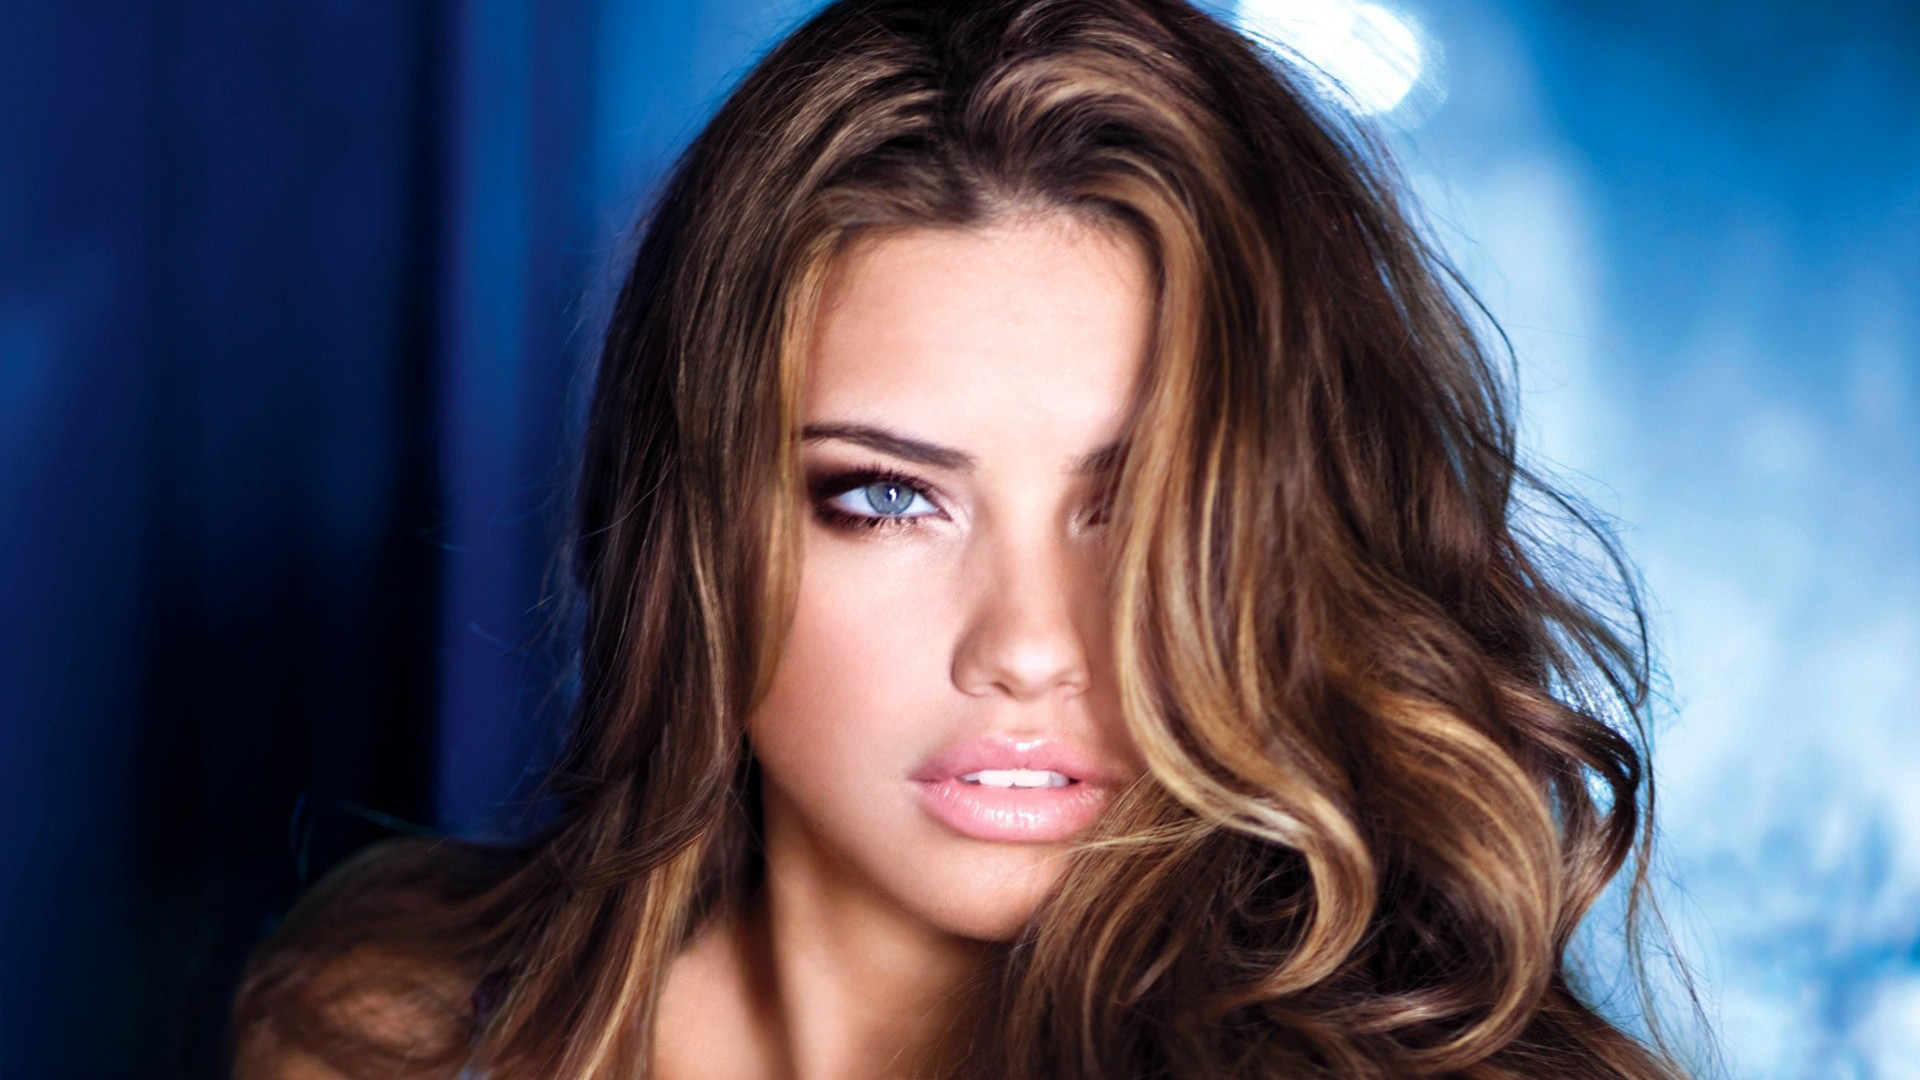 1920x1080 Adriana Lima Backgrounds - Wallpaper Cave